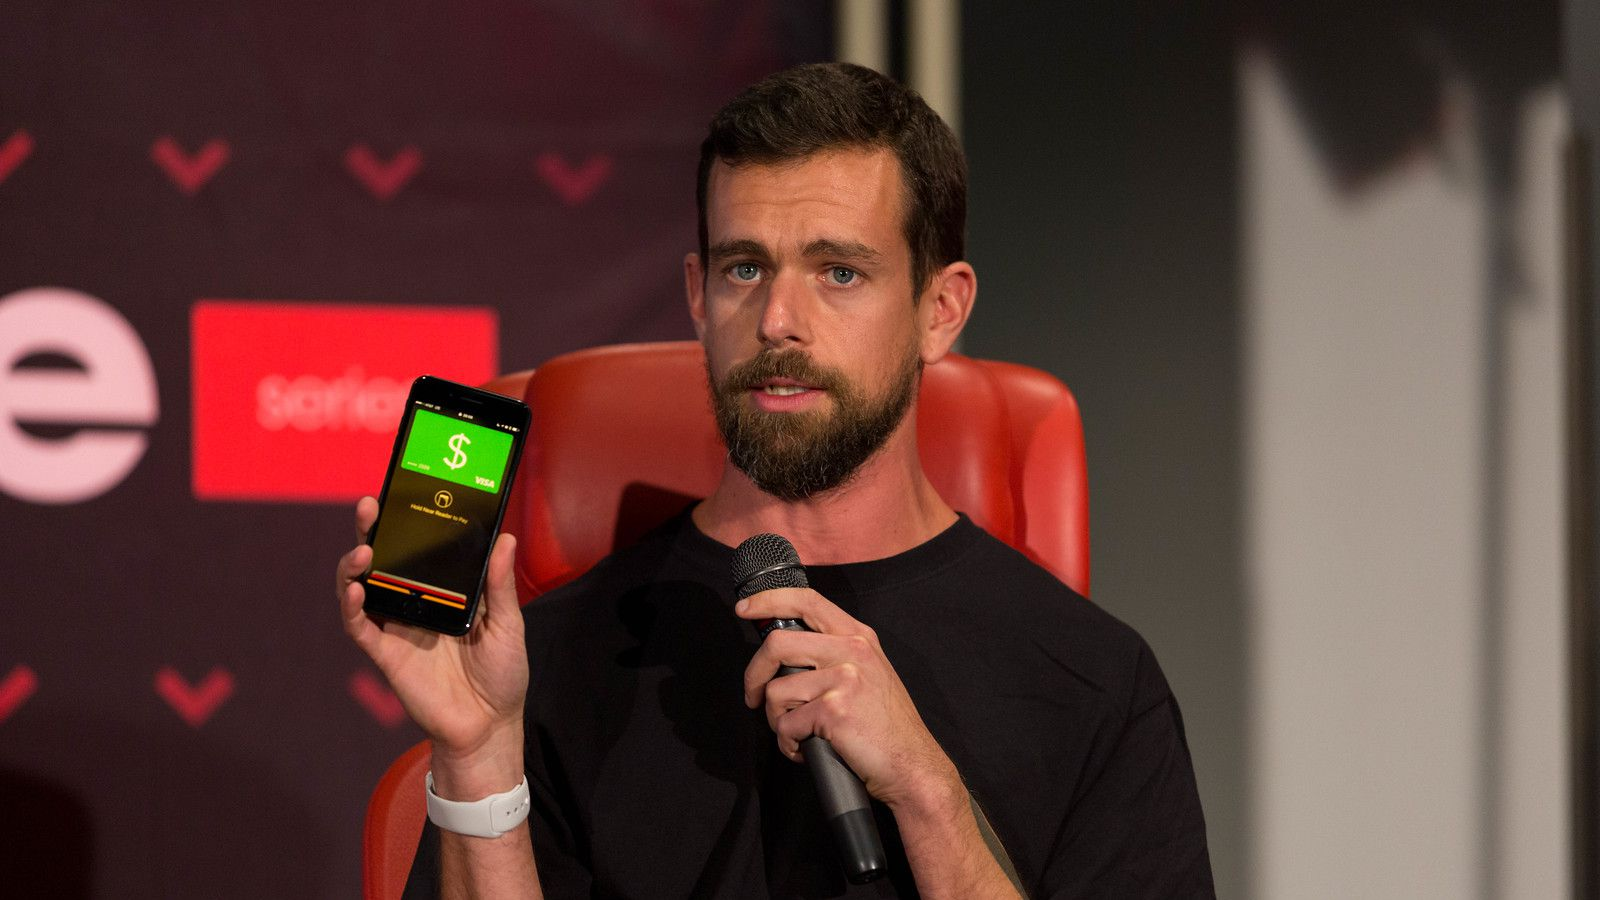 recode.net - Jason Del Rey - Surprise! It's 2017 and Square is thriving